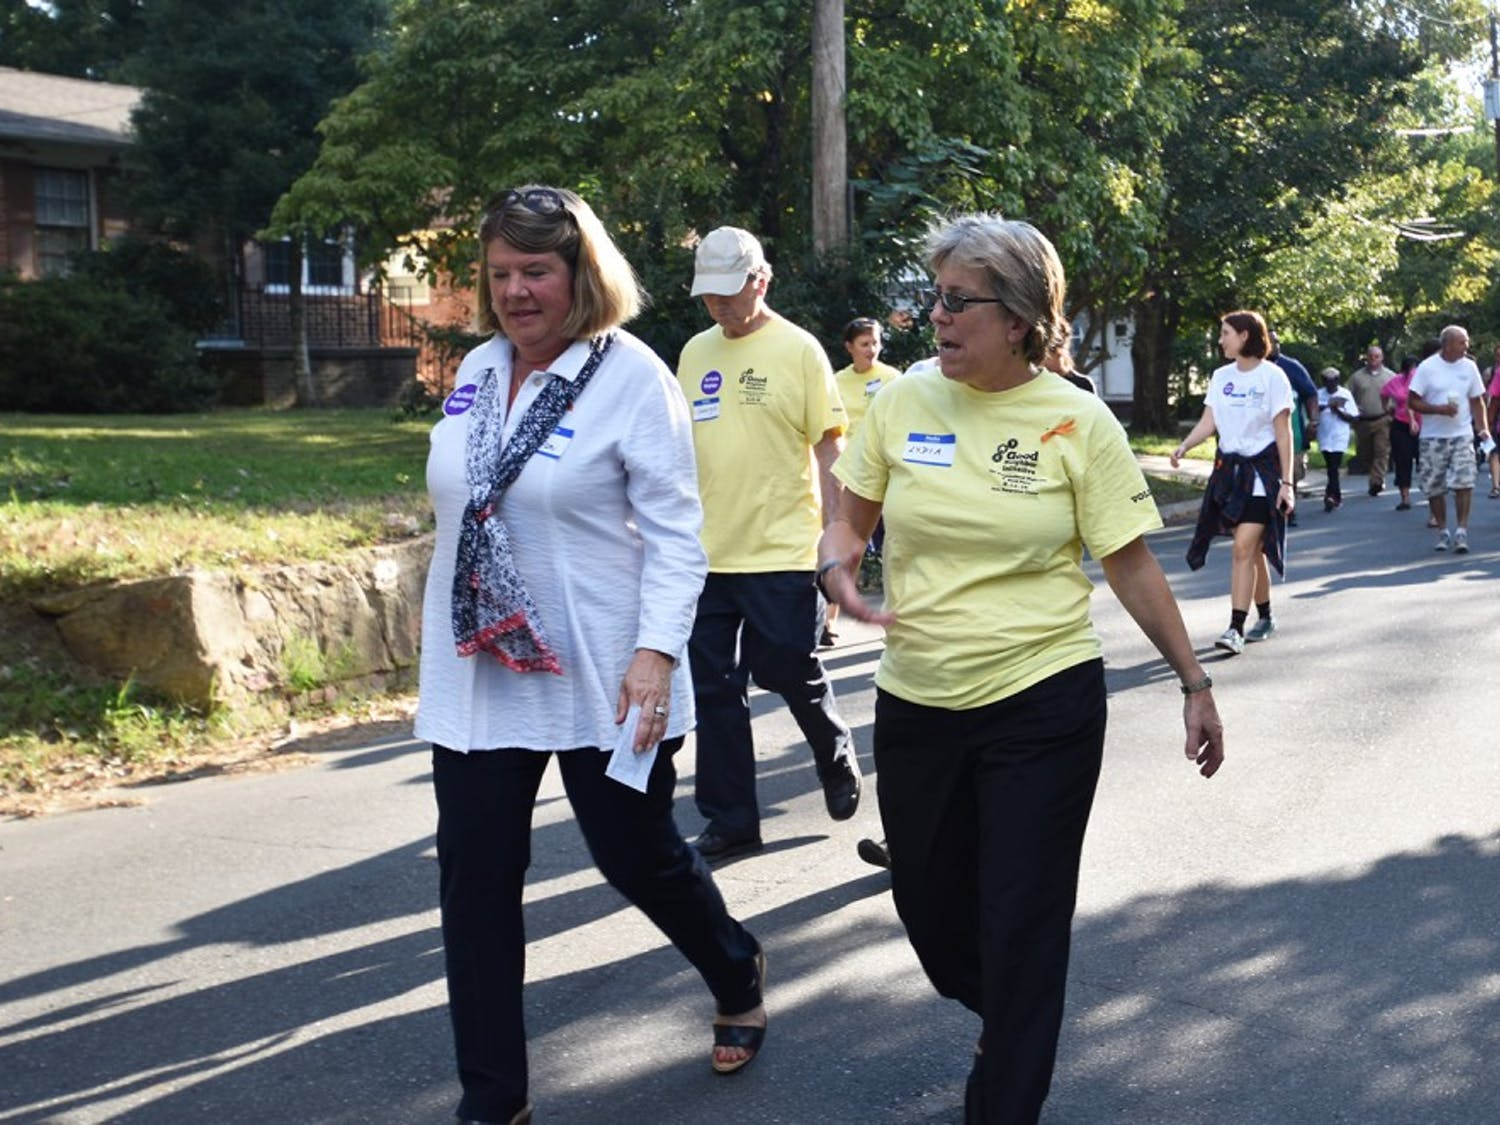 Mayor of Chapel Hill, Pam Hemminger and Mayor of Carrboro, Lydia Lavelle lead a walk around the neighborhood at the good neighbor block party at Hargraves Community Center on Tuesday evening.